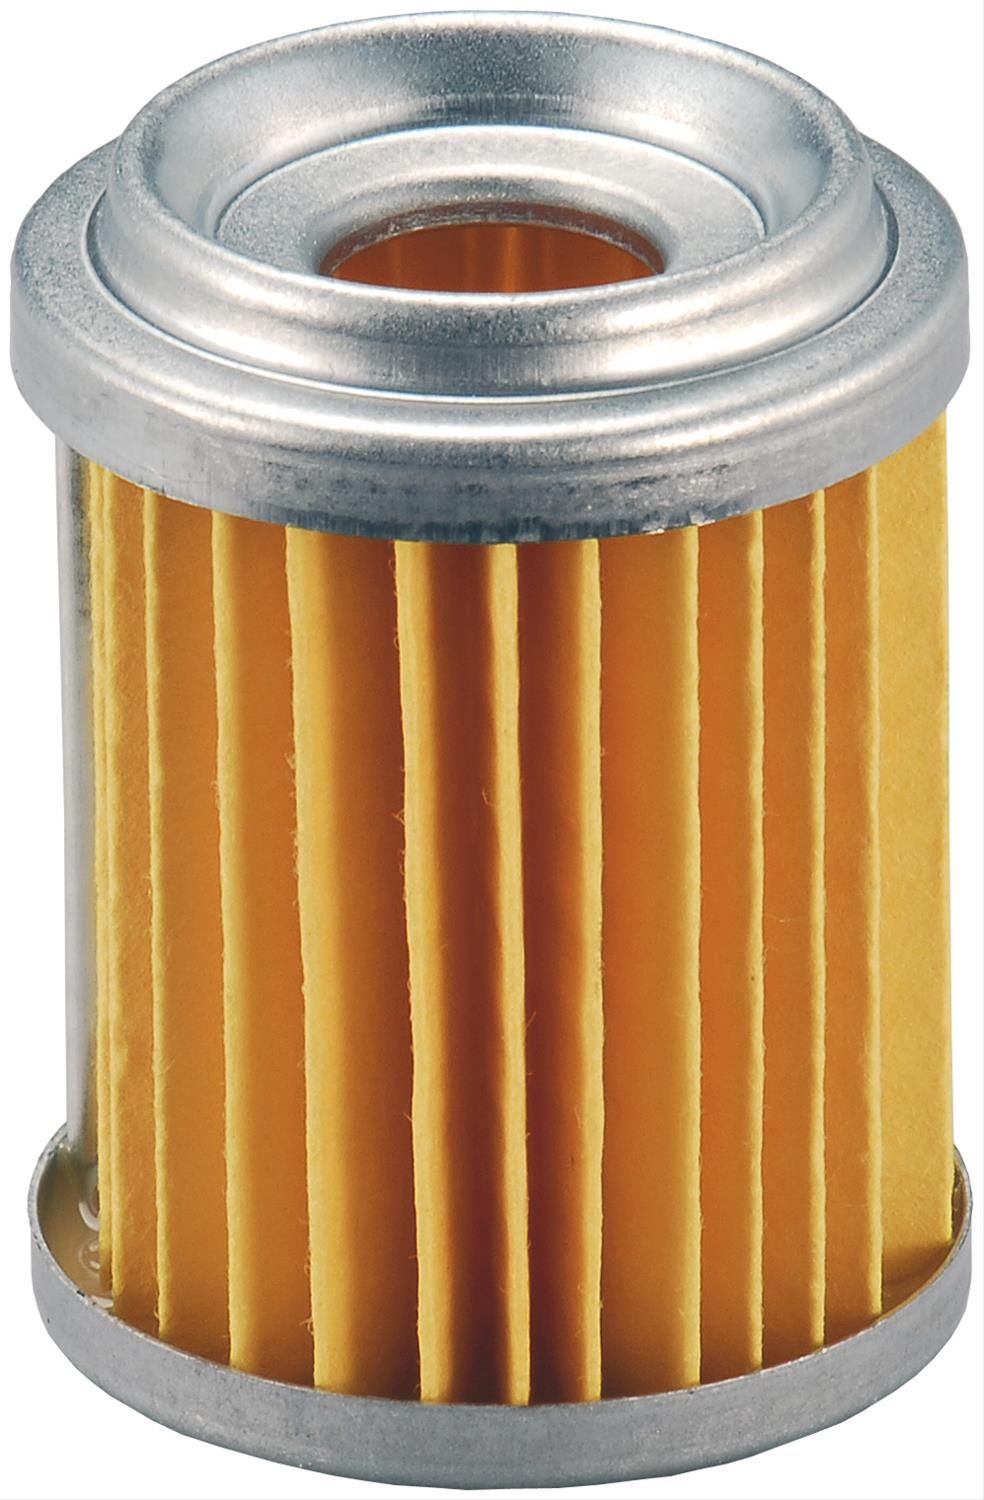 hight resolution of fram fuel filters cg8 free shipping on orders over 99 at summit racing